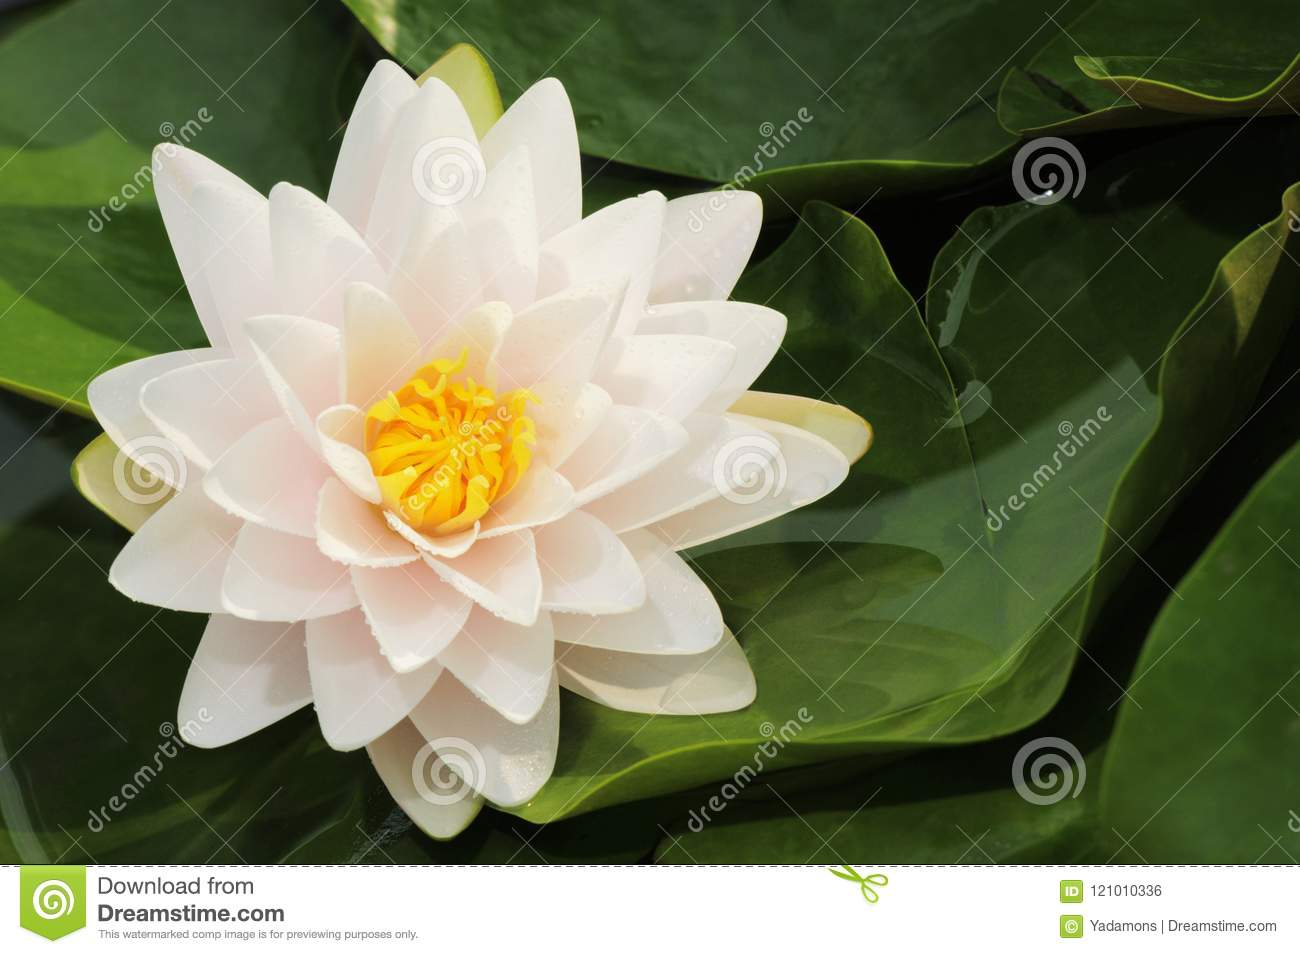 Snowball water lily lotus flower closeup scene on green leaf open snowball water lily lotus flower closeup scene on green leaf open space on right izmirmasajfo